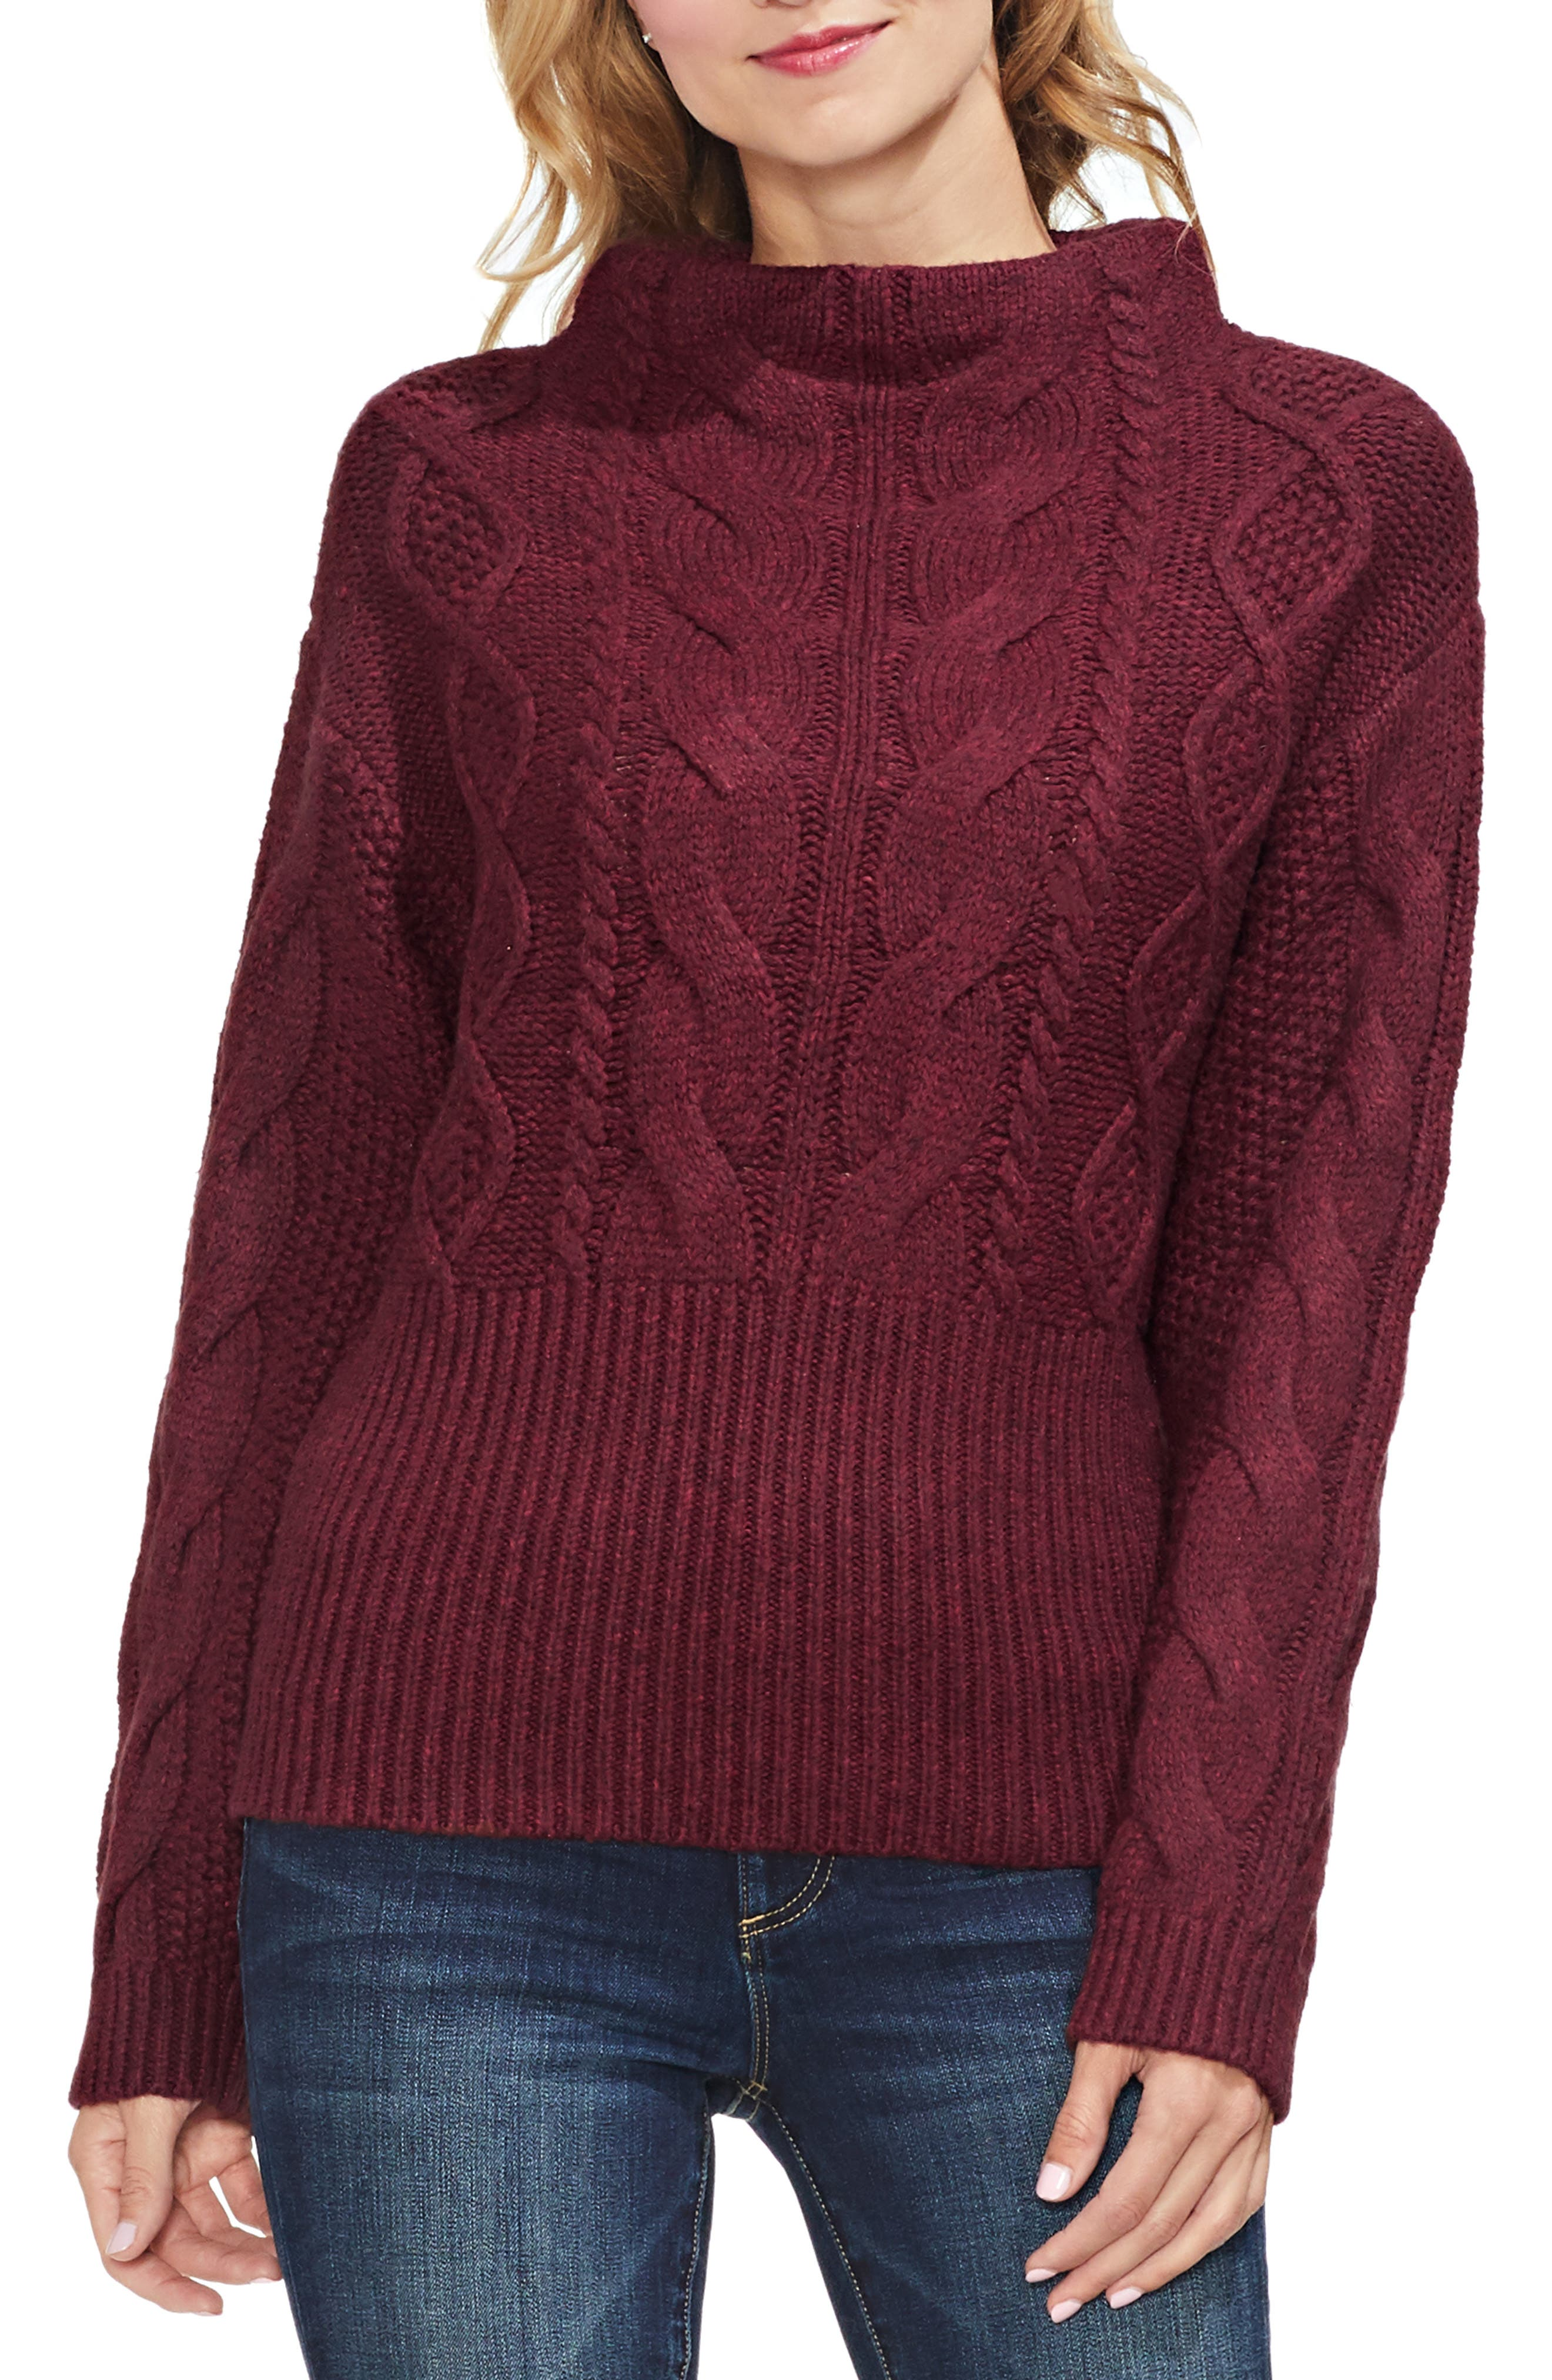 Cotton Blend Cable Knit Sweater,                             Main thumbnail 1, color,                             MANOR RED